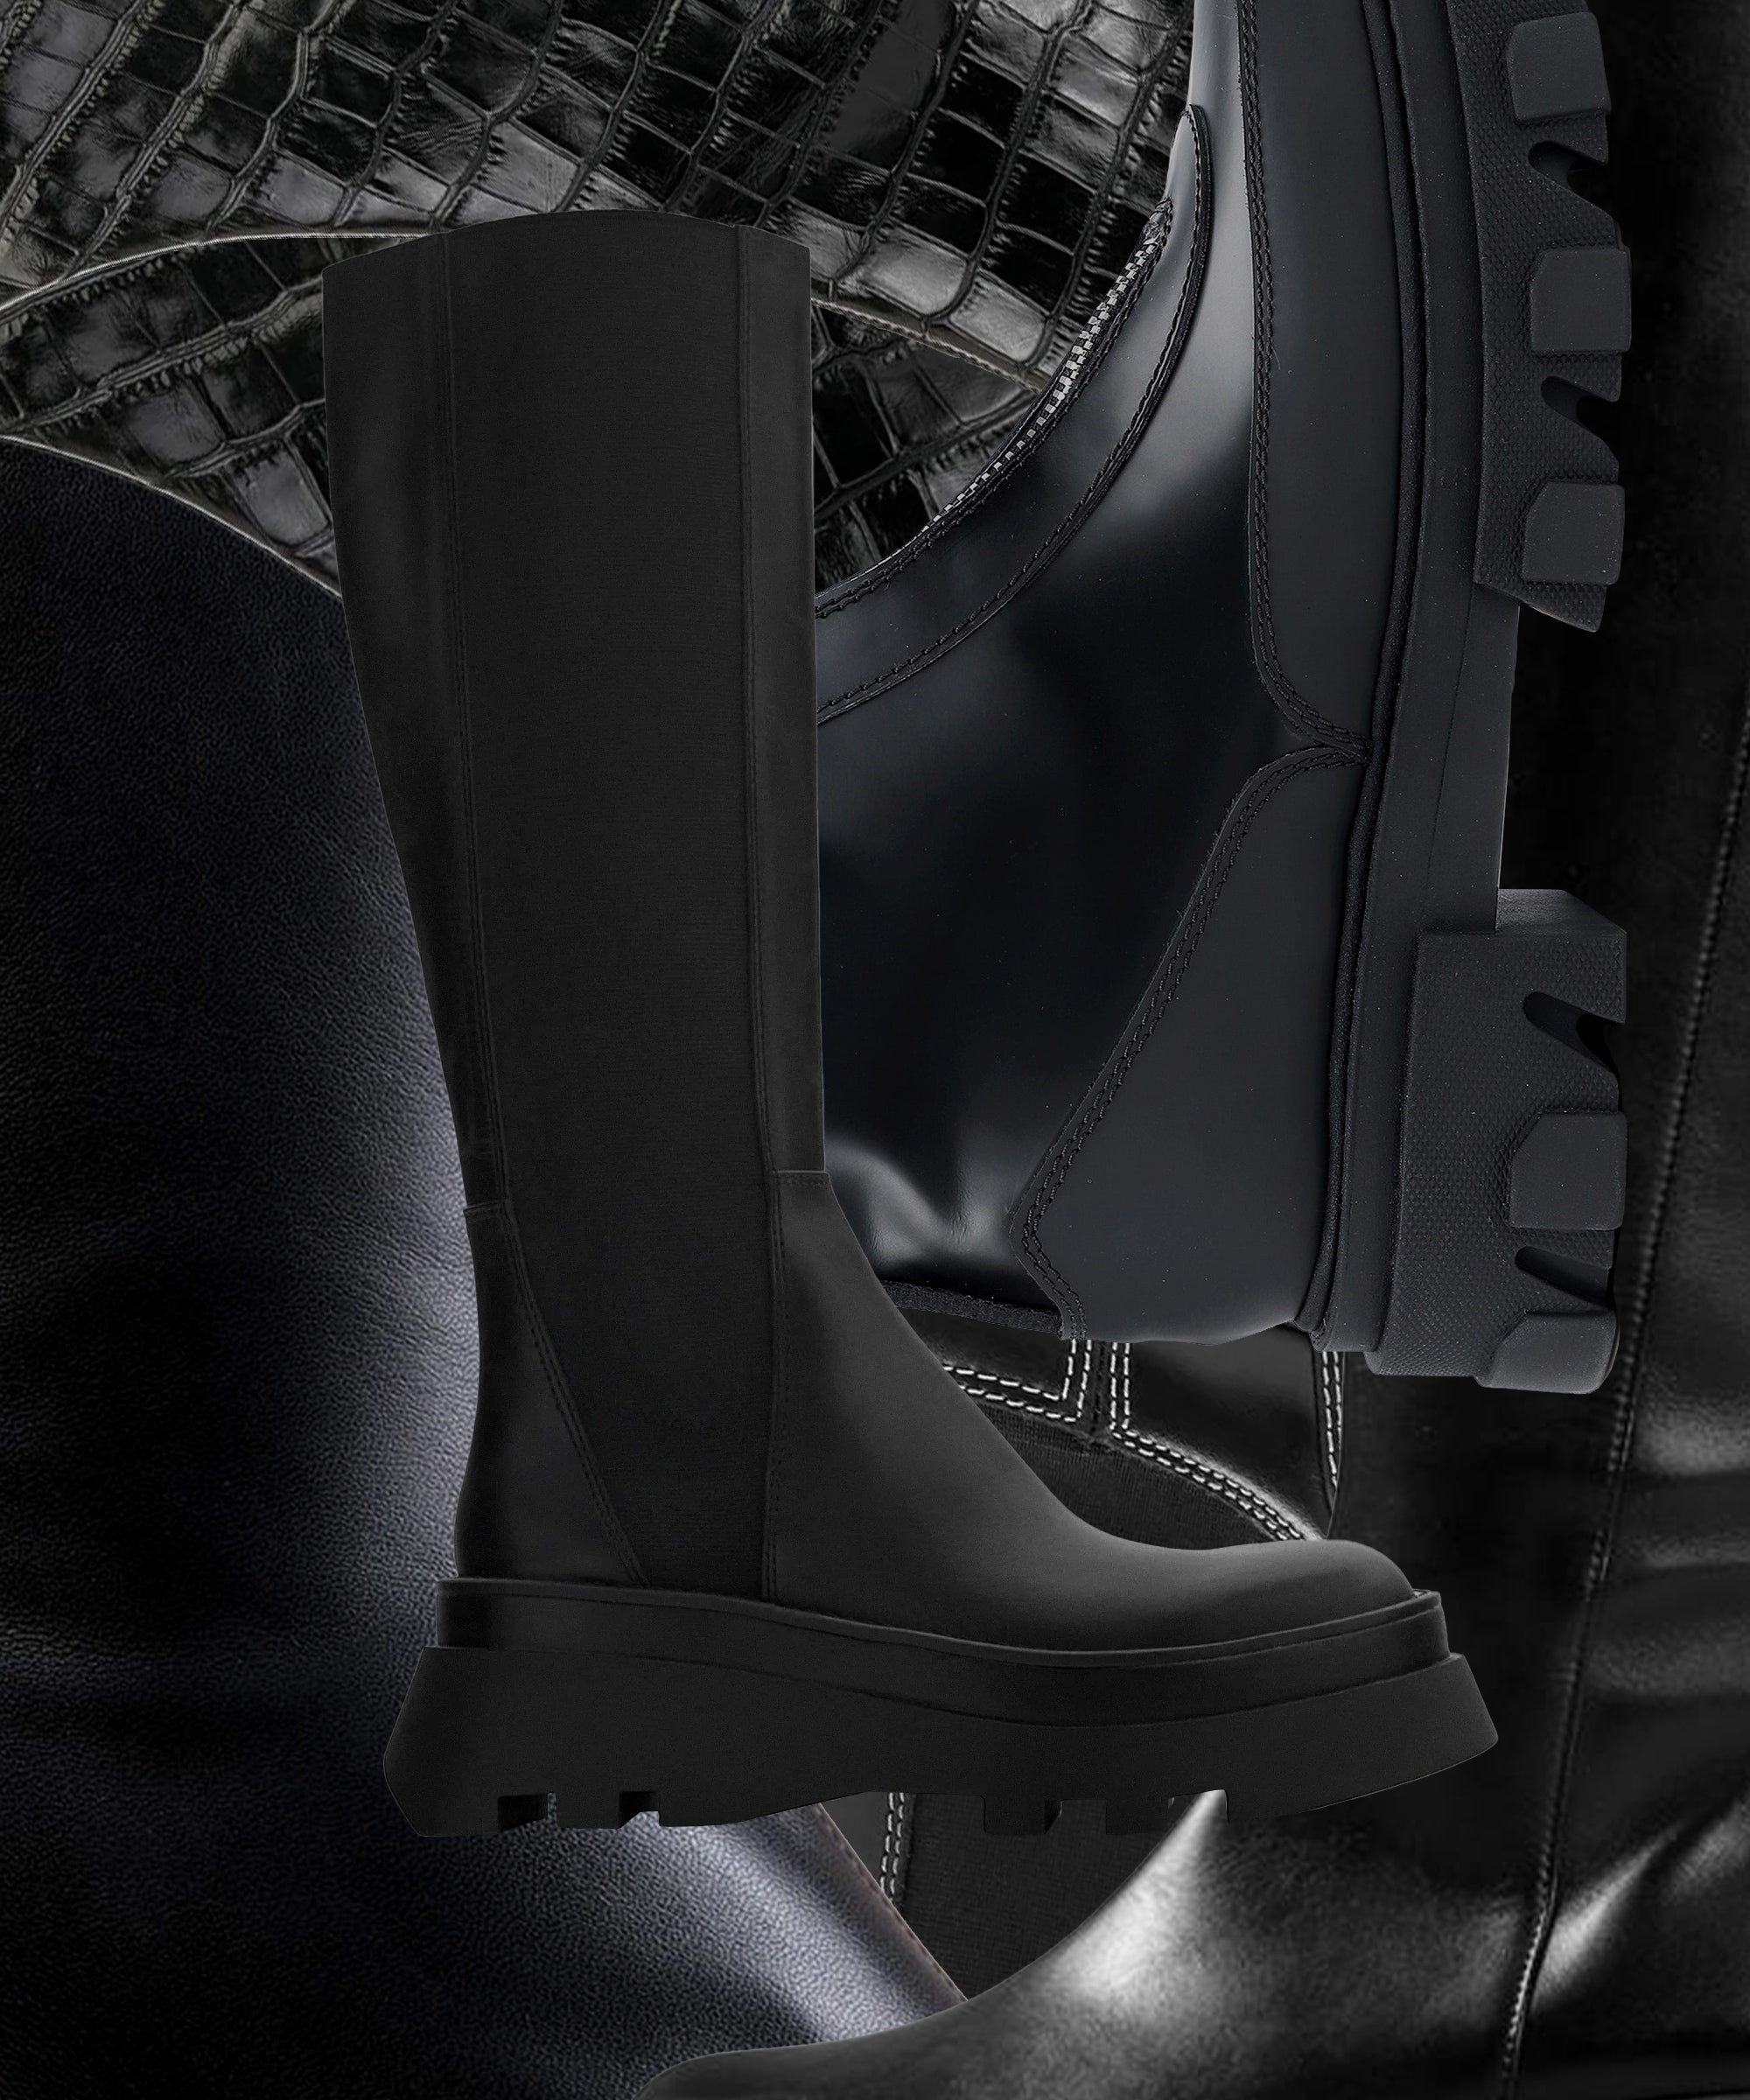 The Best Black Boots: A Definitive